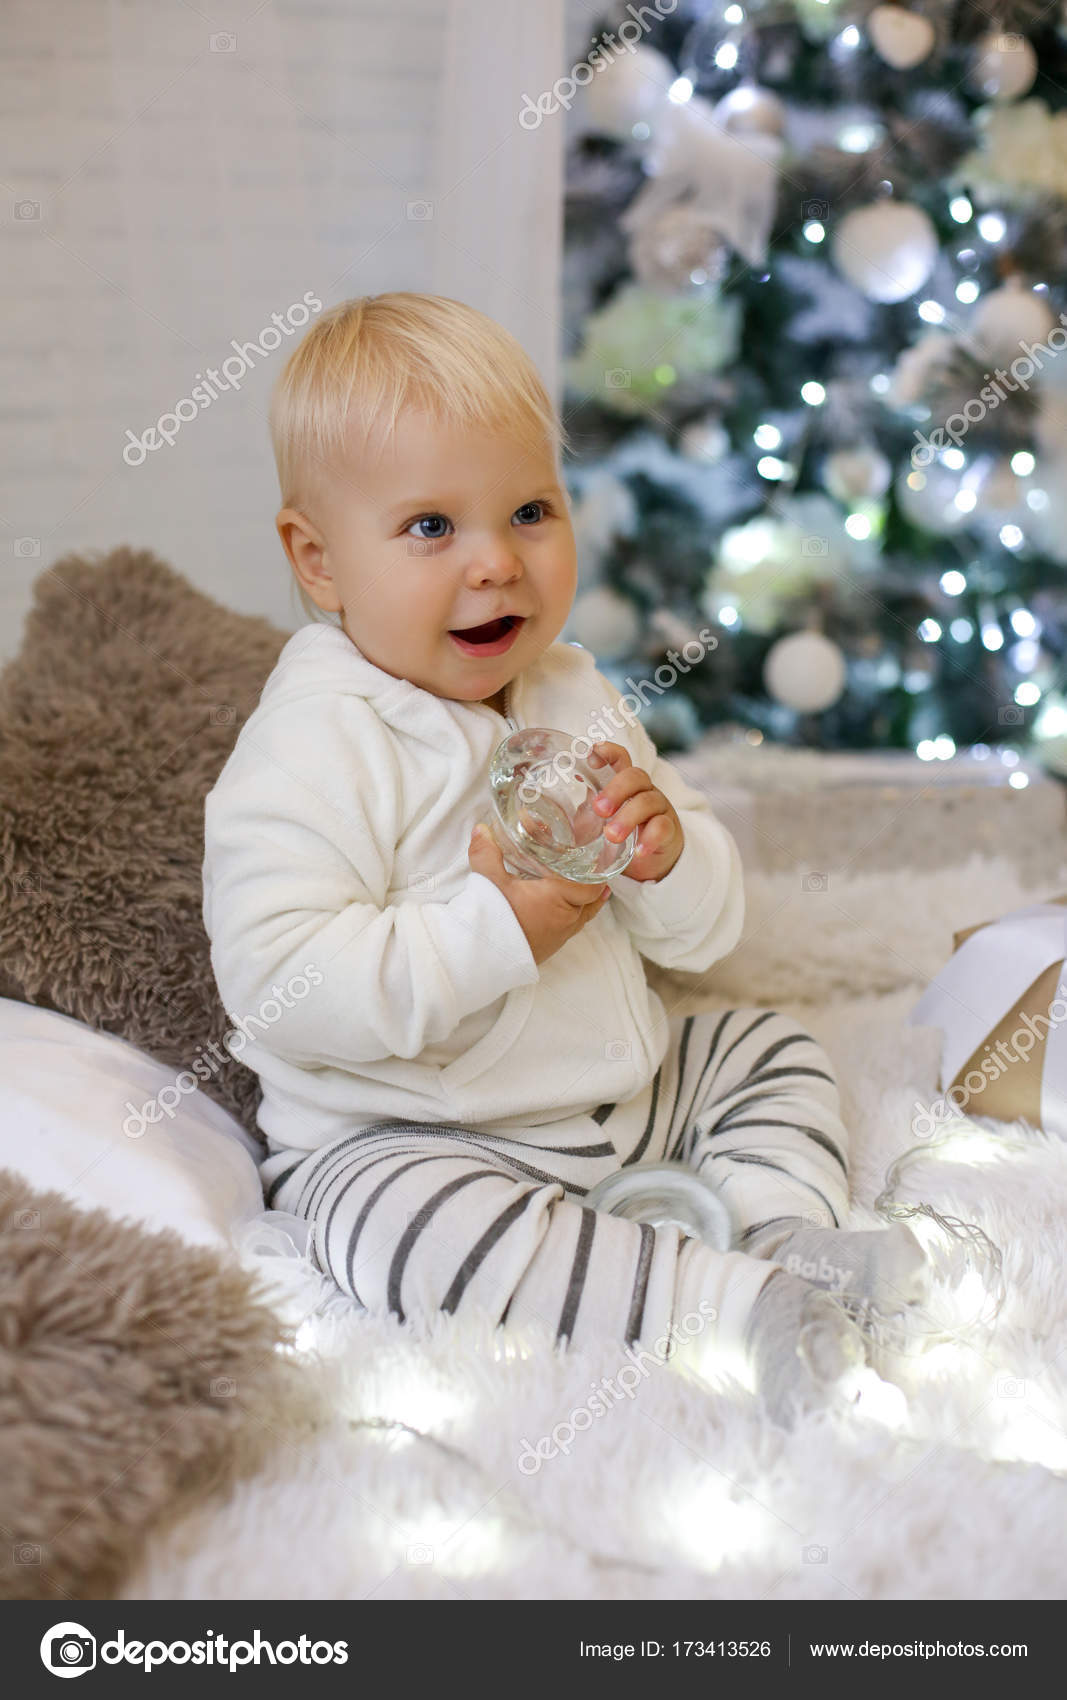 Cute 1 Year Old Baby Boy In Cozy Clothes Posing In New Year Dec